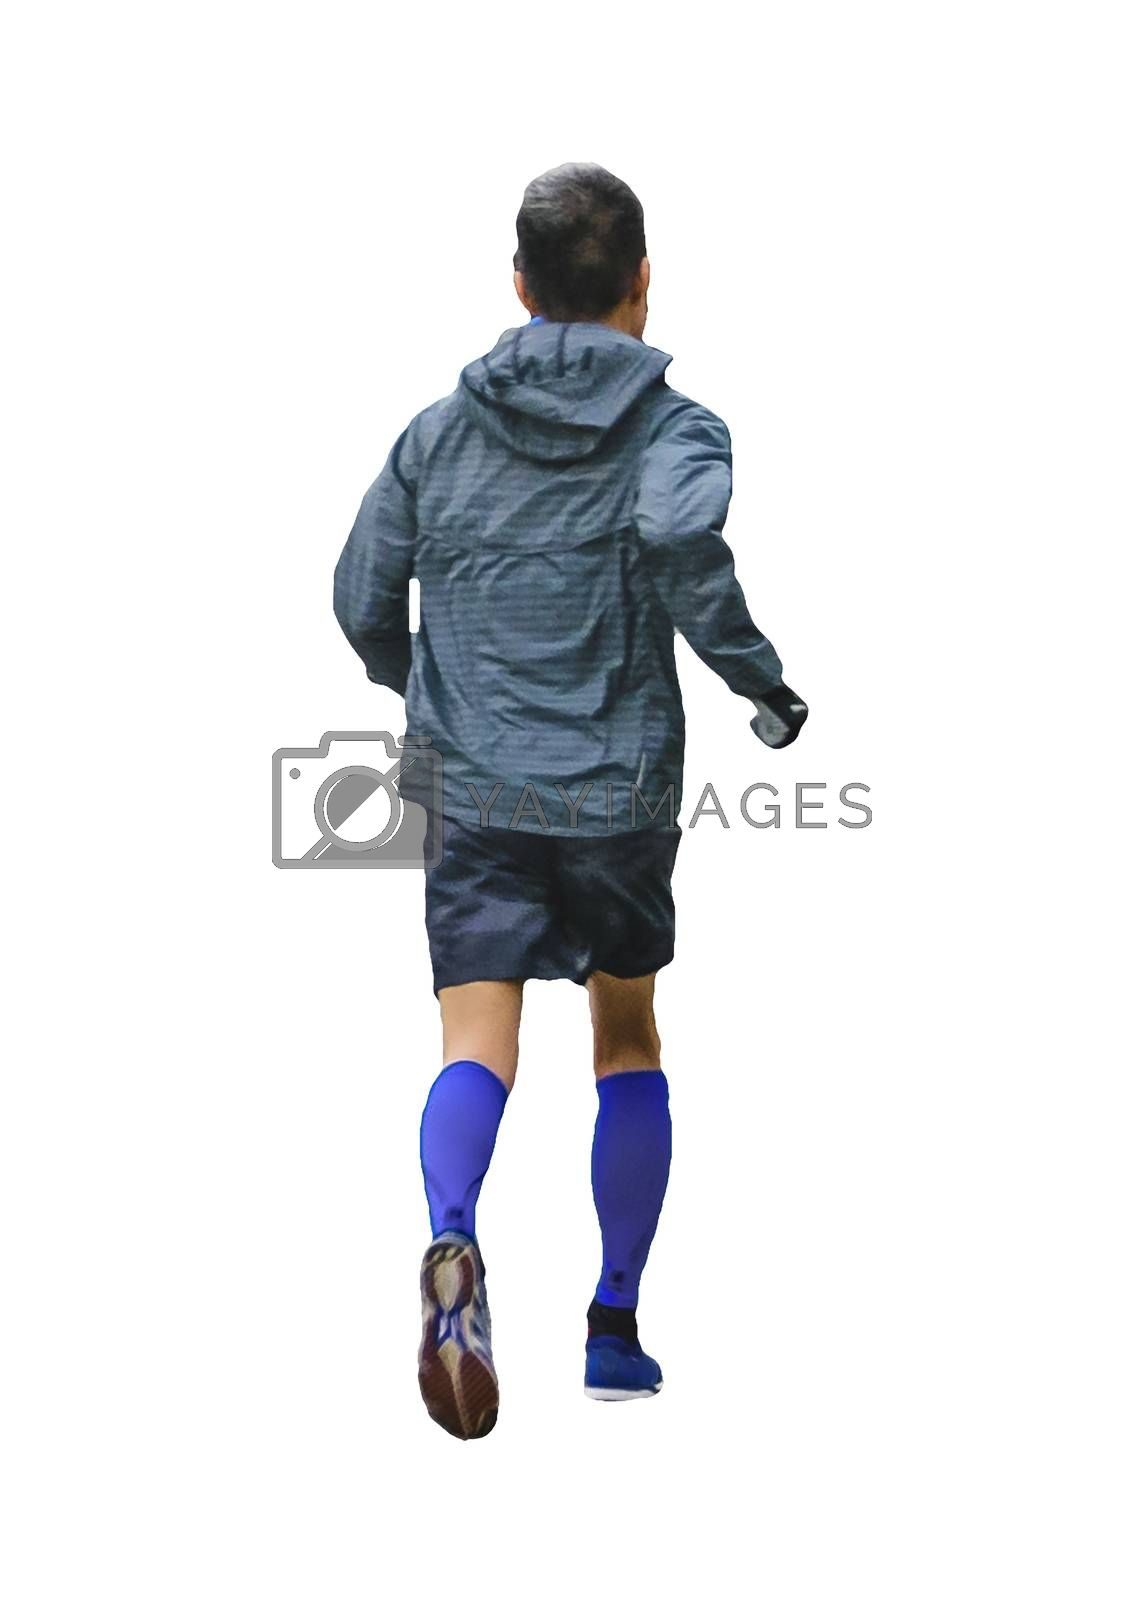 Adult thin man running photo isolated against white background